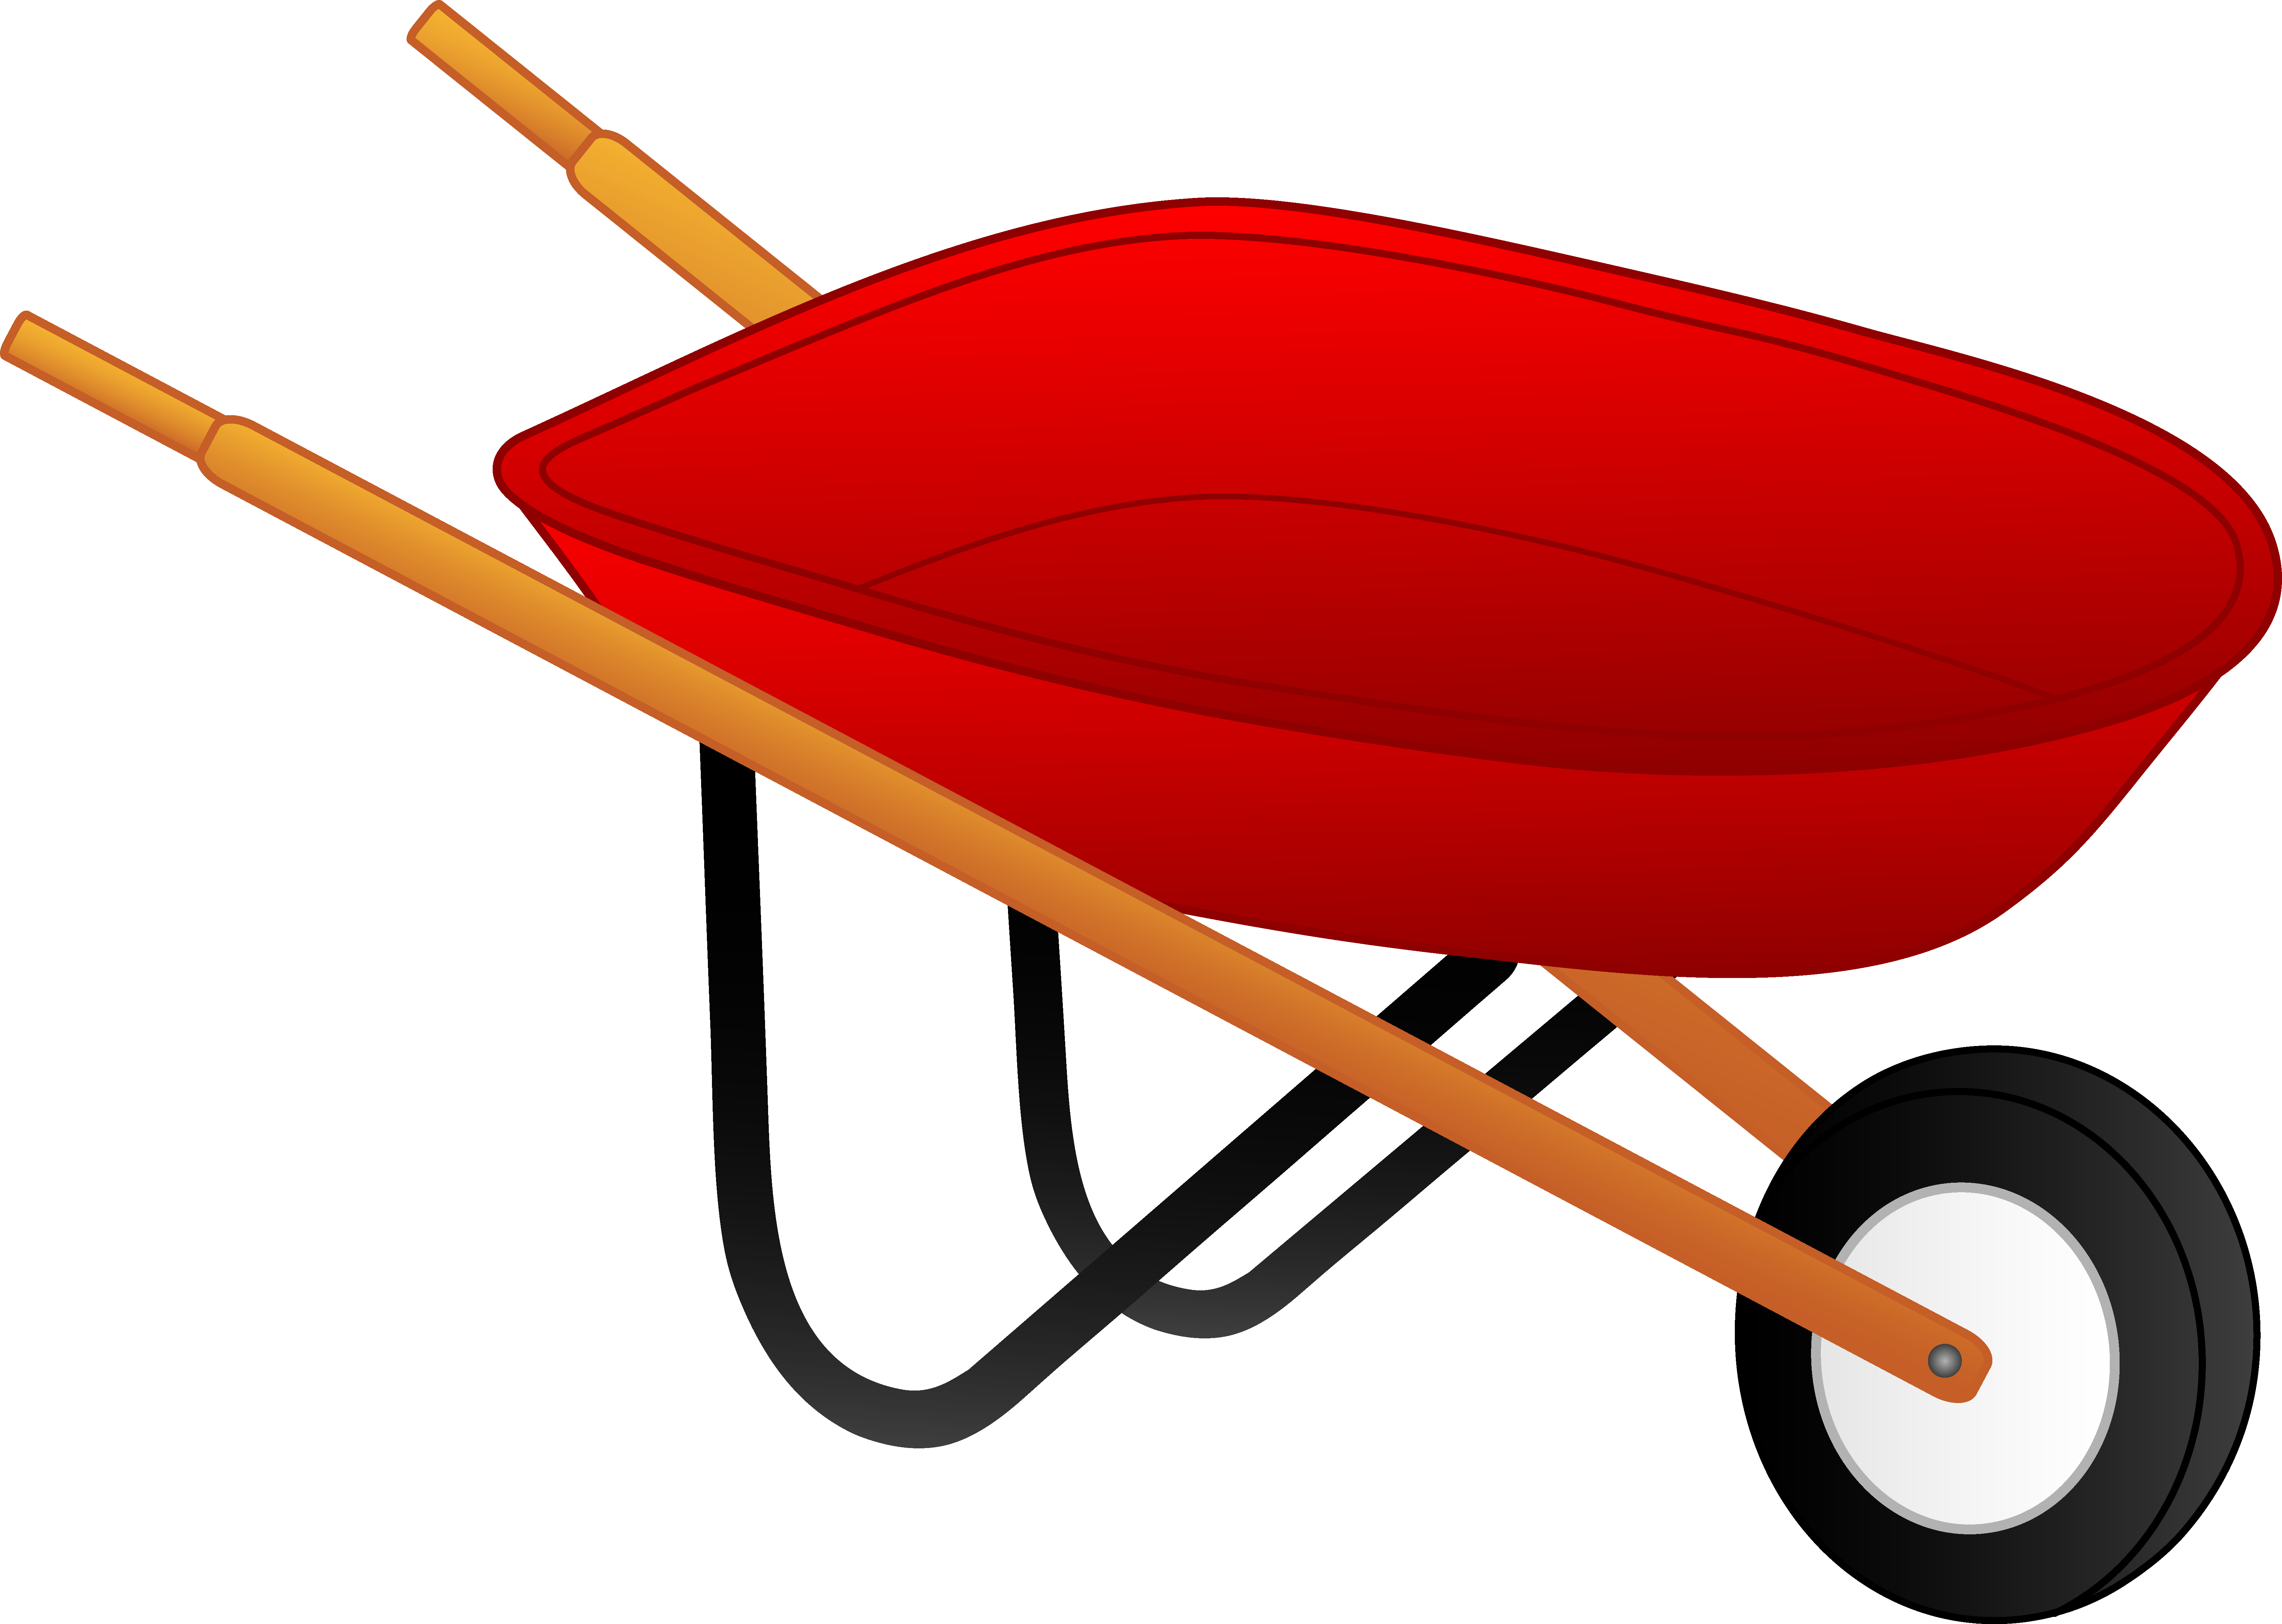 Little Red Wheelbarrow - Free Clip Art. -Little Red Wheelbarrow - Free Clip Art. Pix For Kids Yard Work ...-6